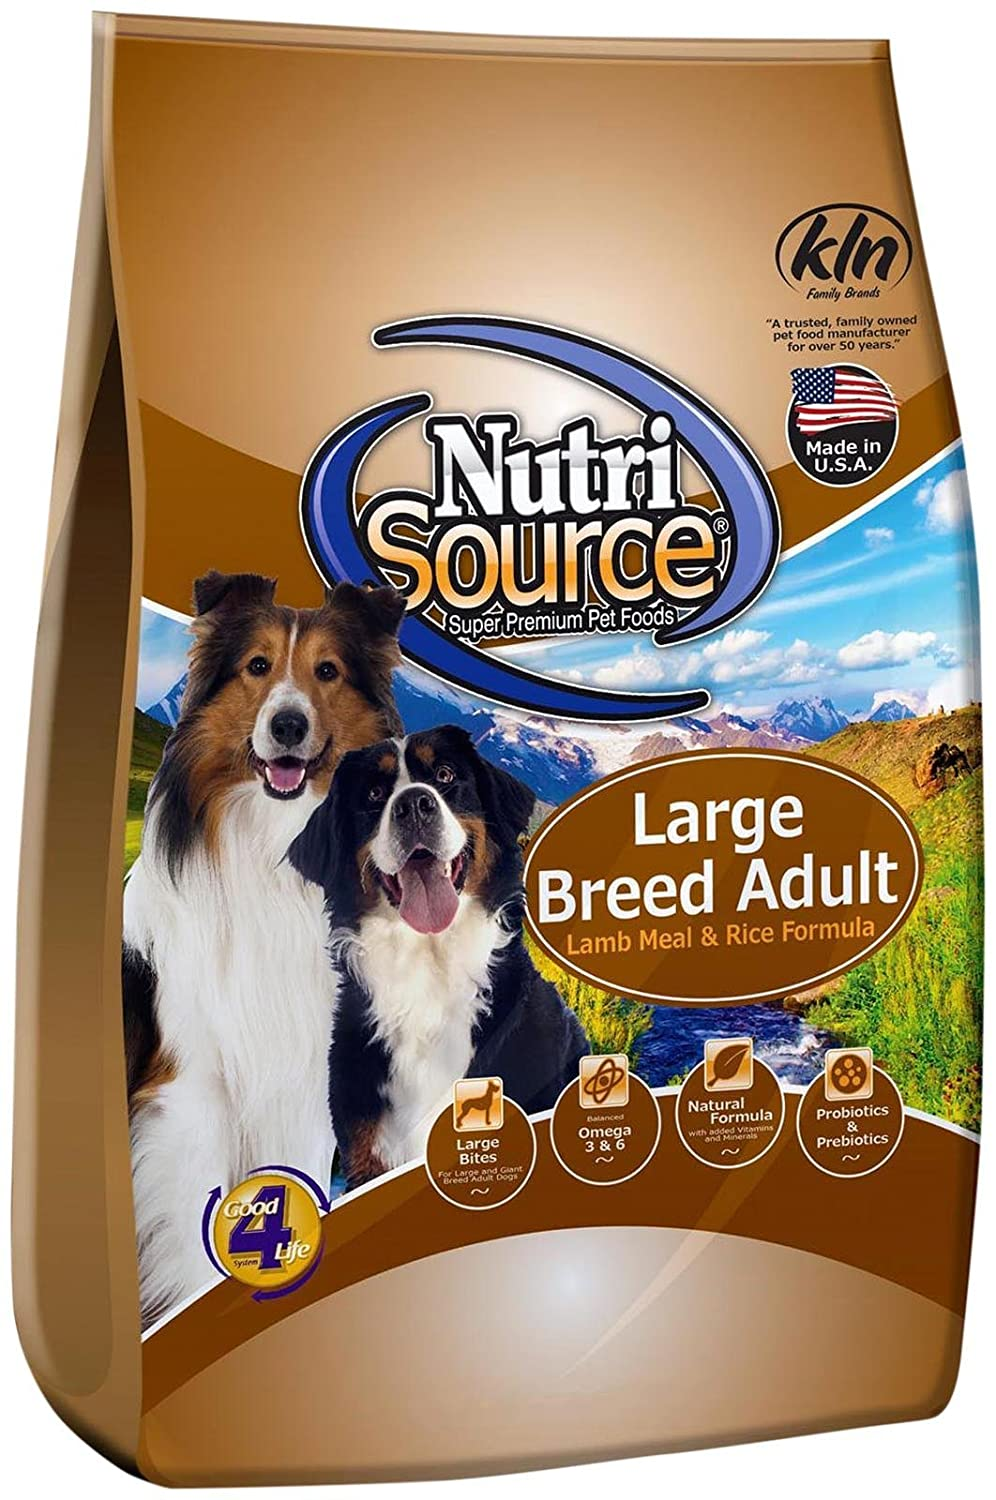 Tuffy S Nutrisource 30-Pound Chicken And Rice Formula Breed Dry Puppy Food, Small Medium